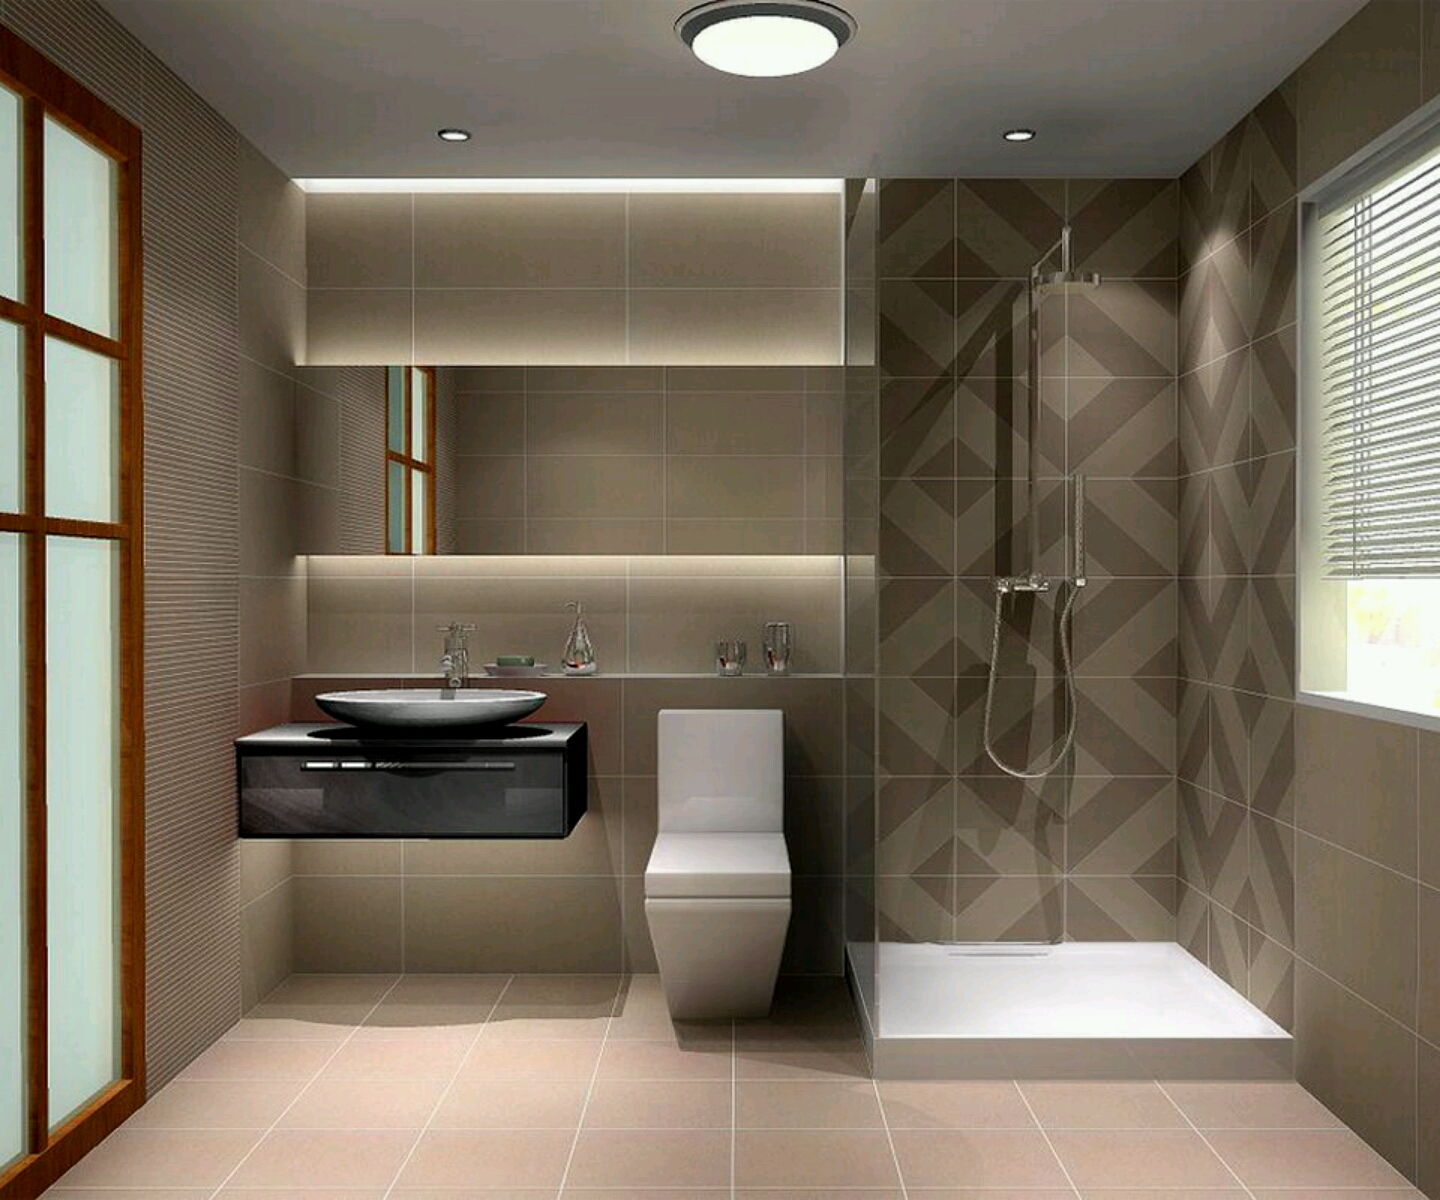 modern-bathroom-as-small-bathroom-ideas-and-Get-Inspired-to-Decorate-Your-Bathroom-with-impressive-Appearance-1